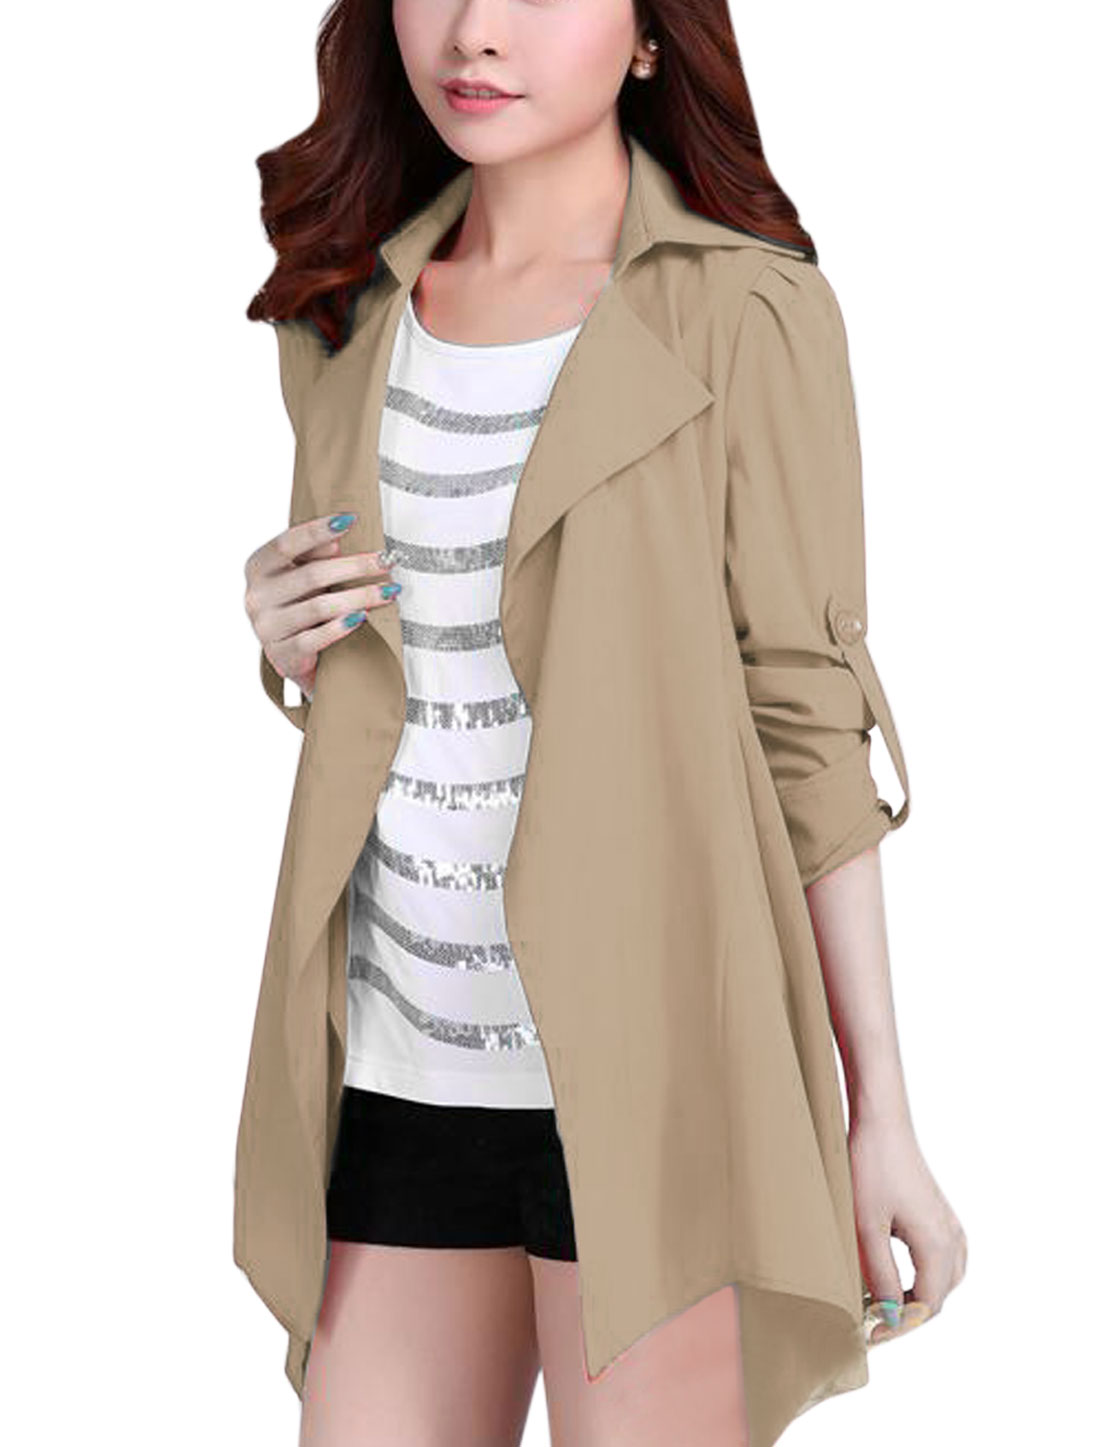 Lady Notched Lapel Strap Decor Back Casual Trench Coat Beige M